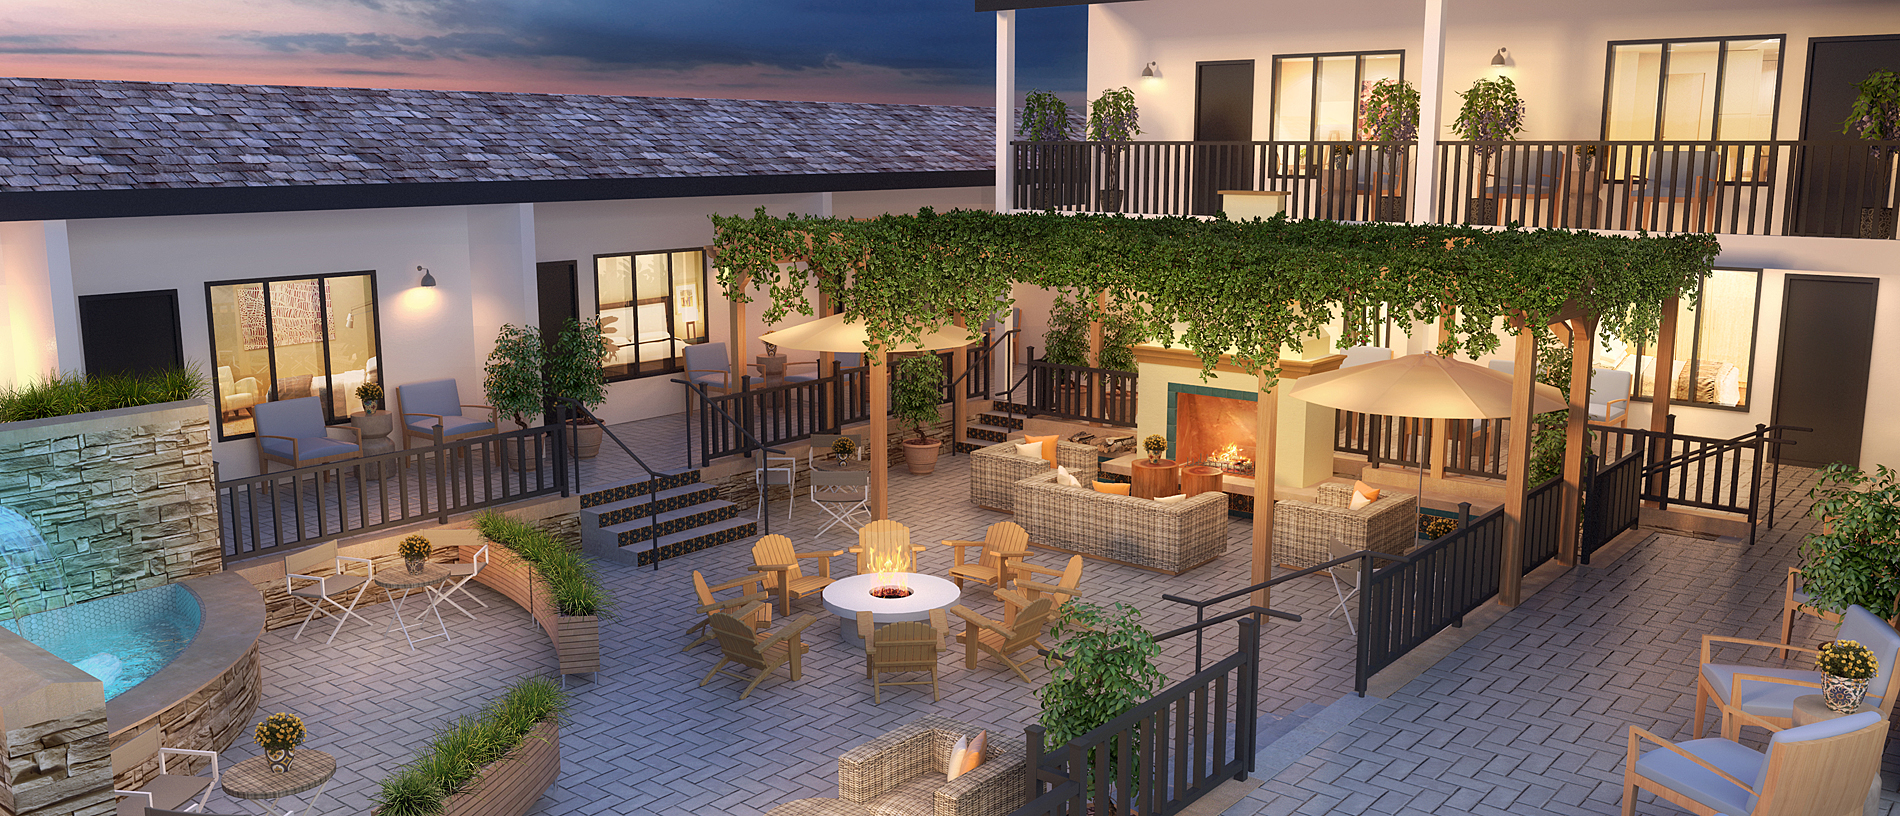 Classic Hotels Amp Resorts Announces Second Carmel By The